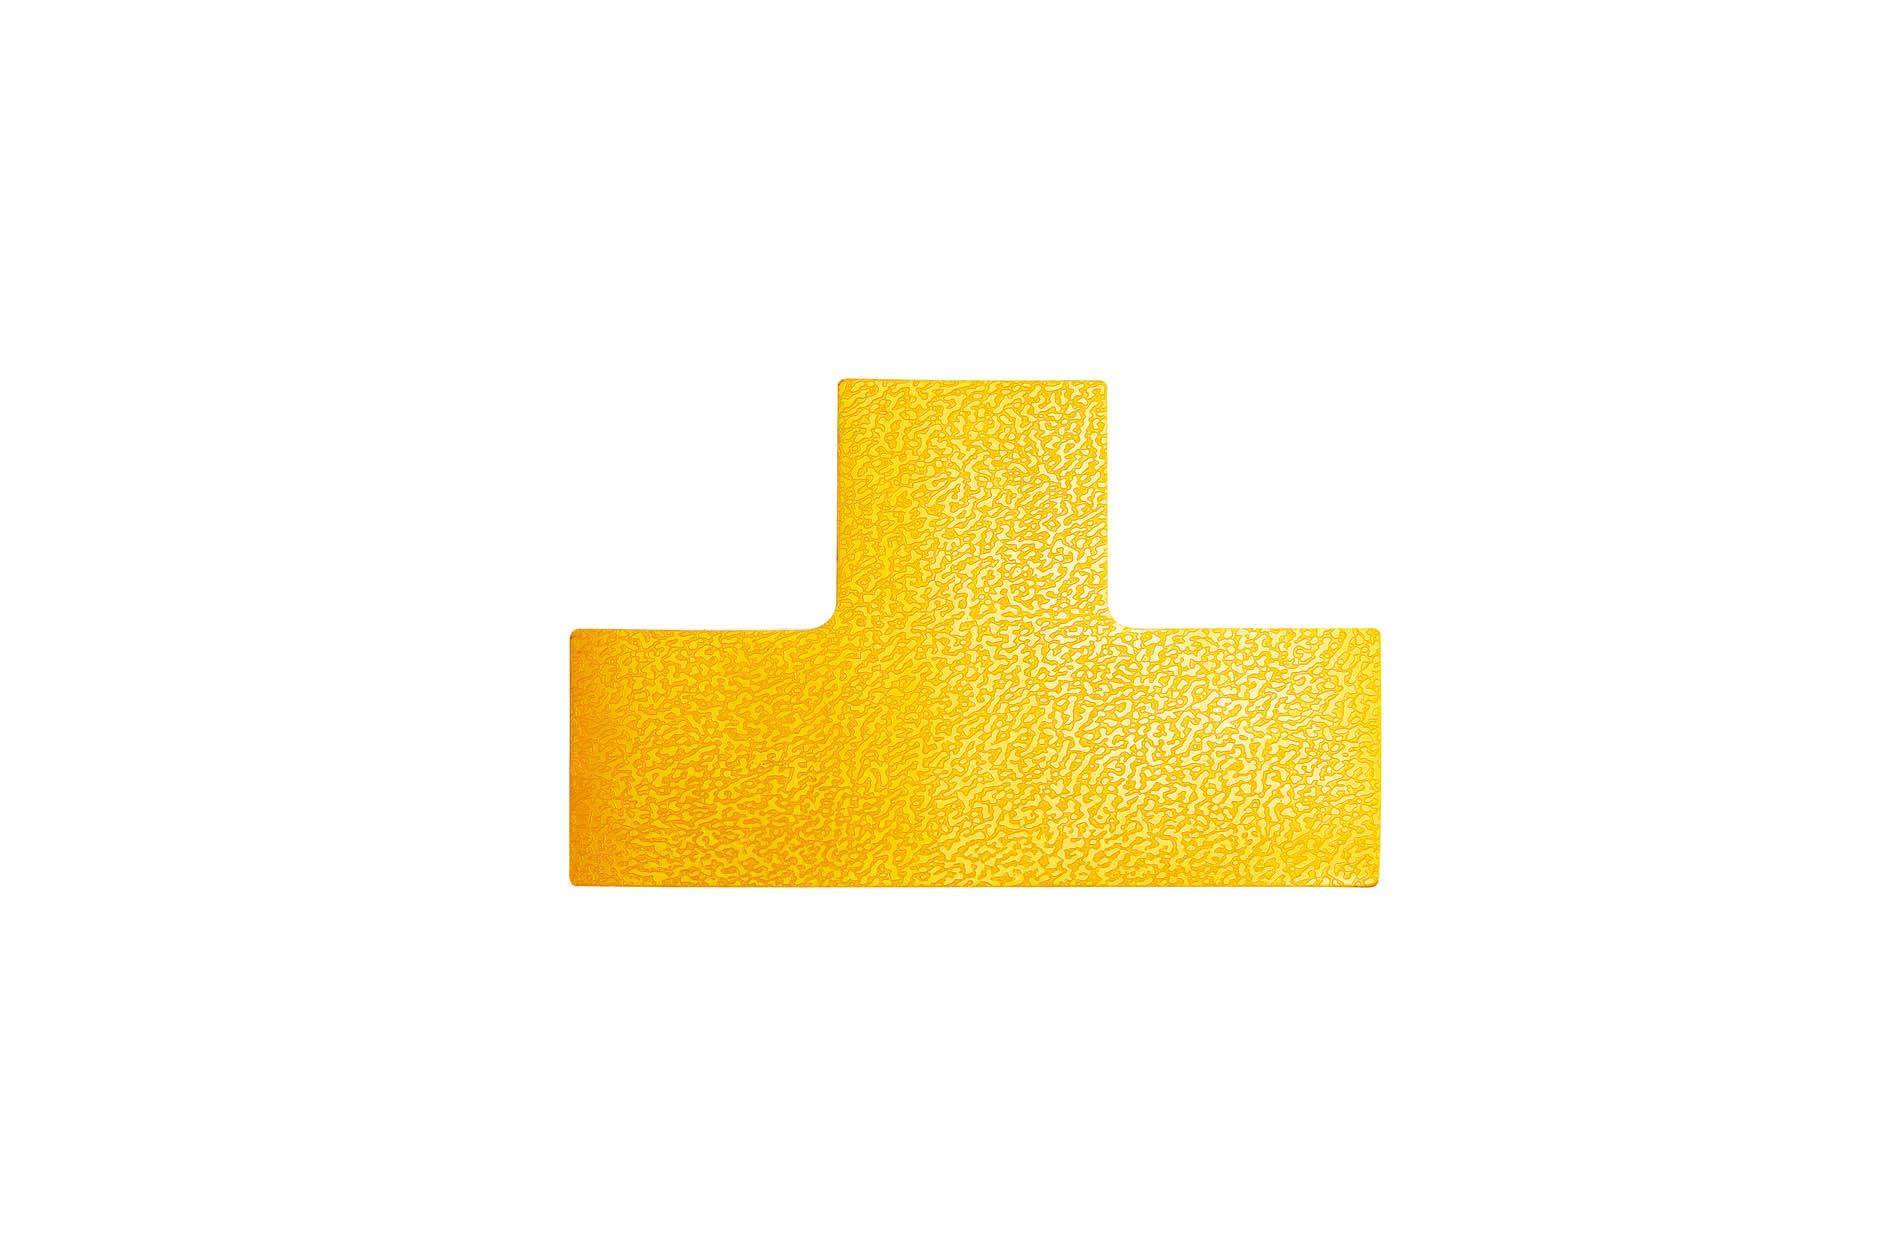 Durable T 170004 Pitch Marking in T Shape Self-Adhesive and Abrasion Resistant Pack of 10 RAL 1003 Signal Yellow by Durable